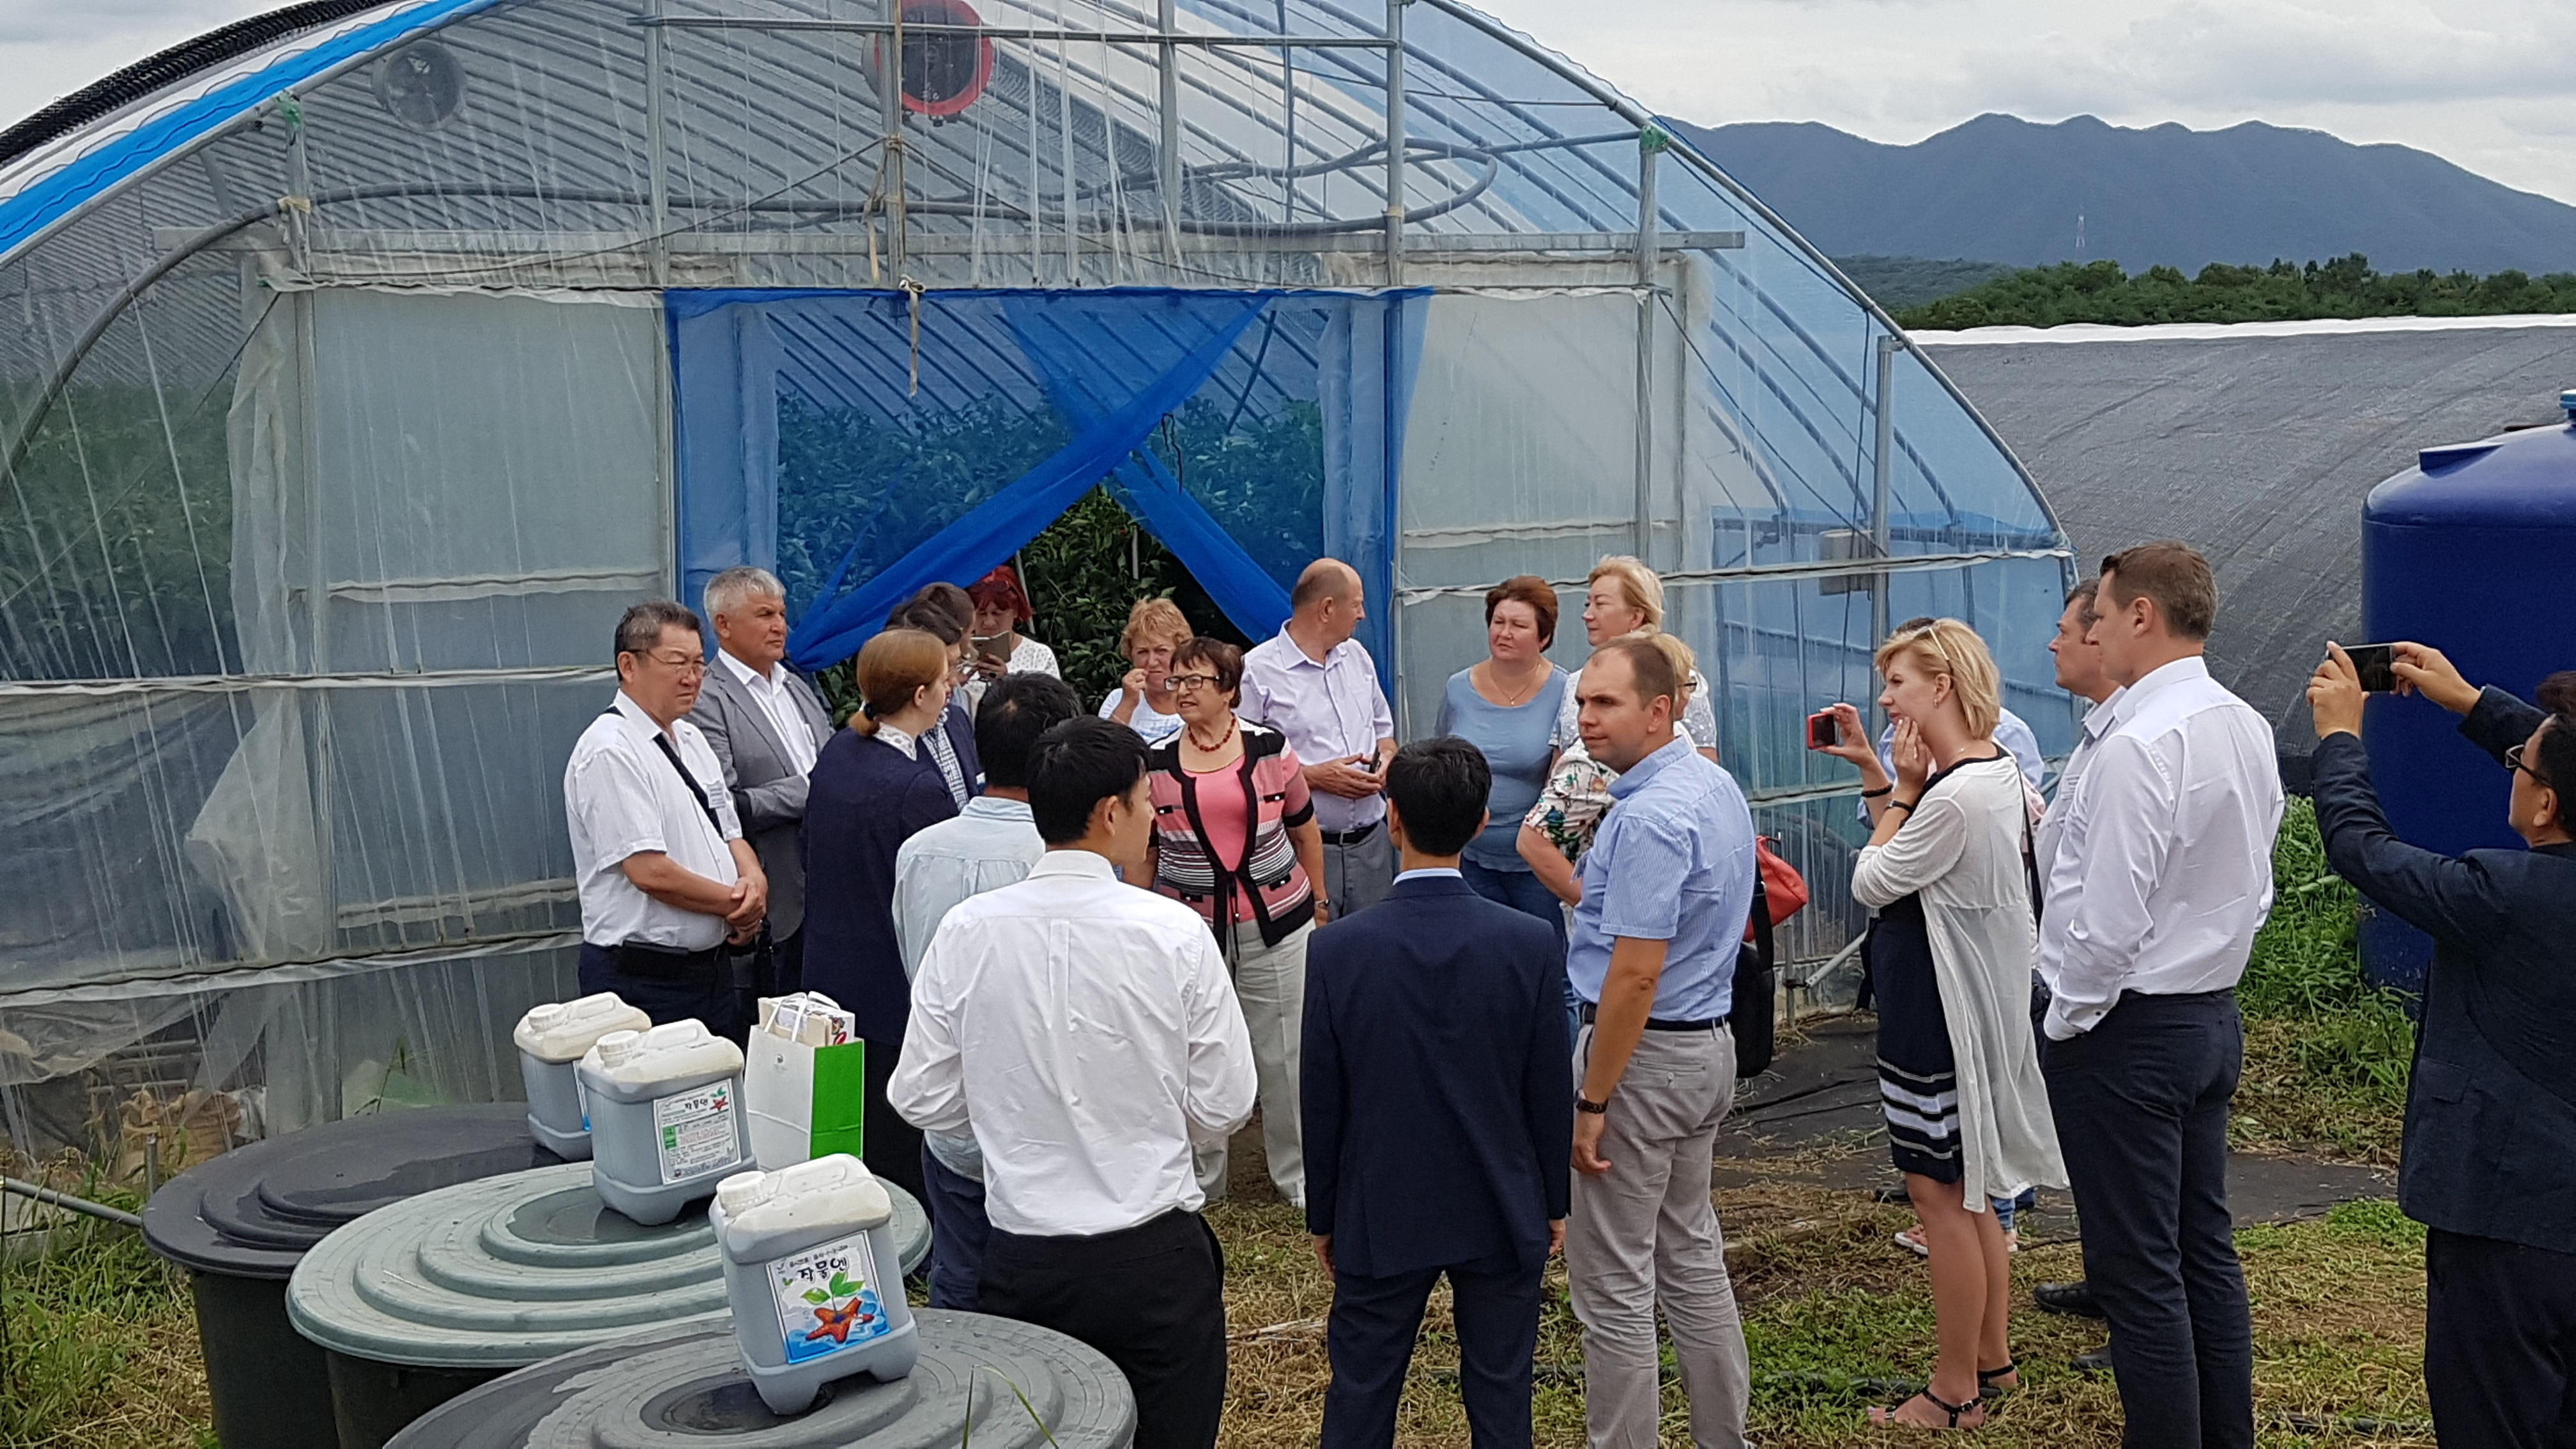 A delegation from Russia keen interested in the Agriculture Center system